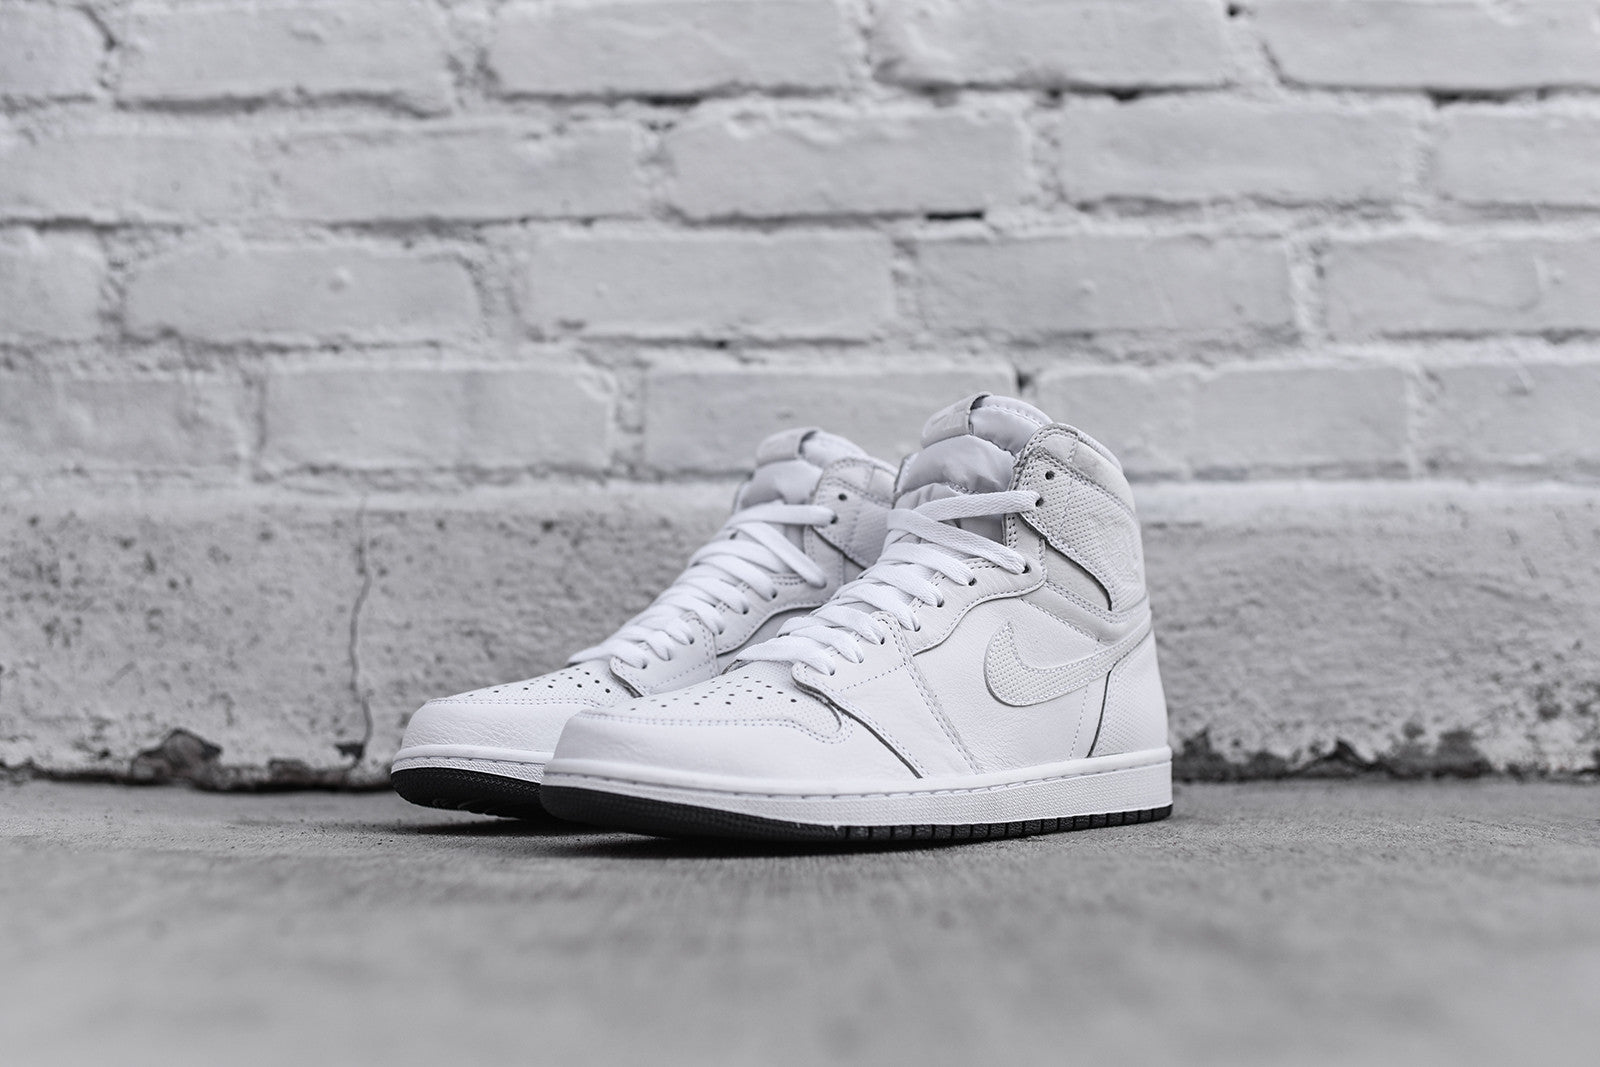 Nike Air Jordan 1 Retro High OG - White / Black